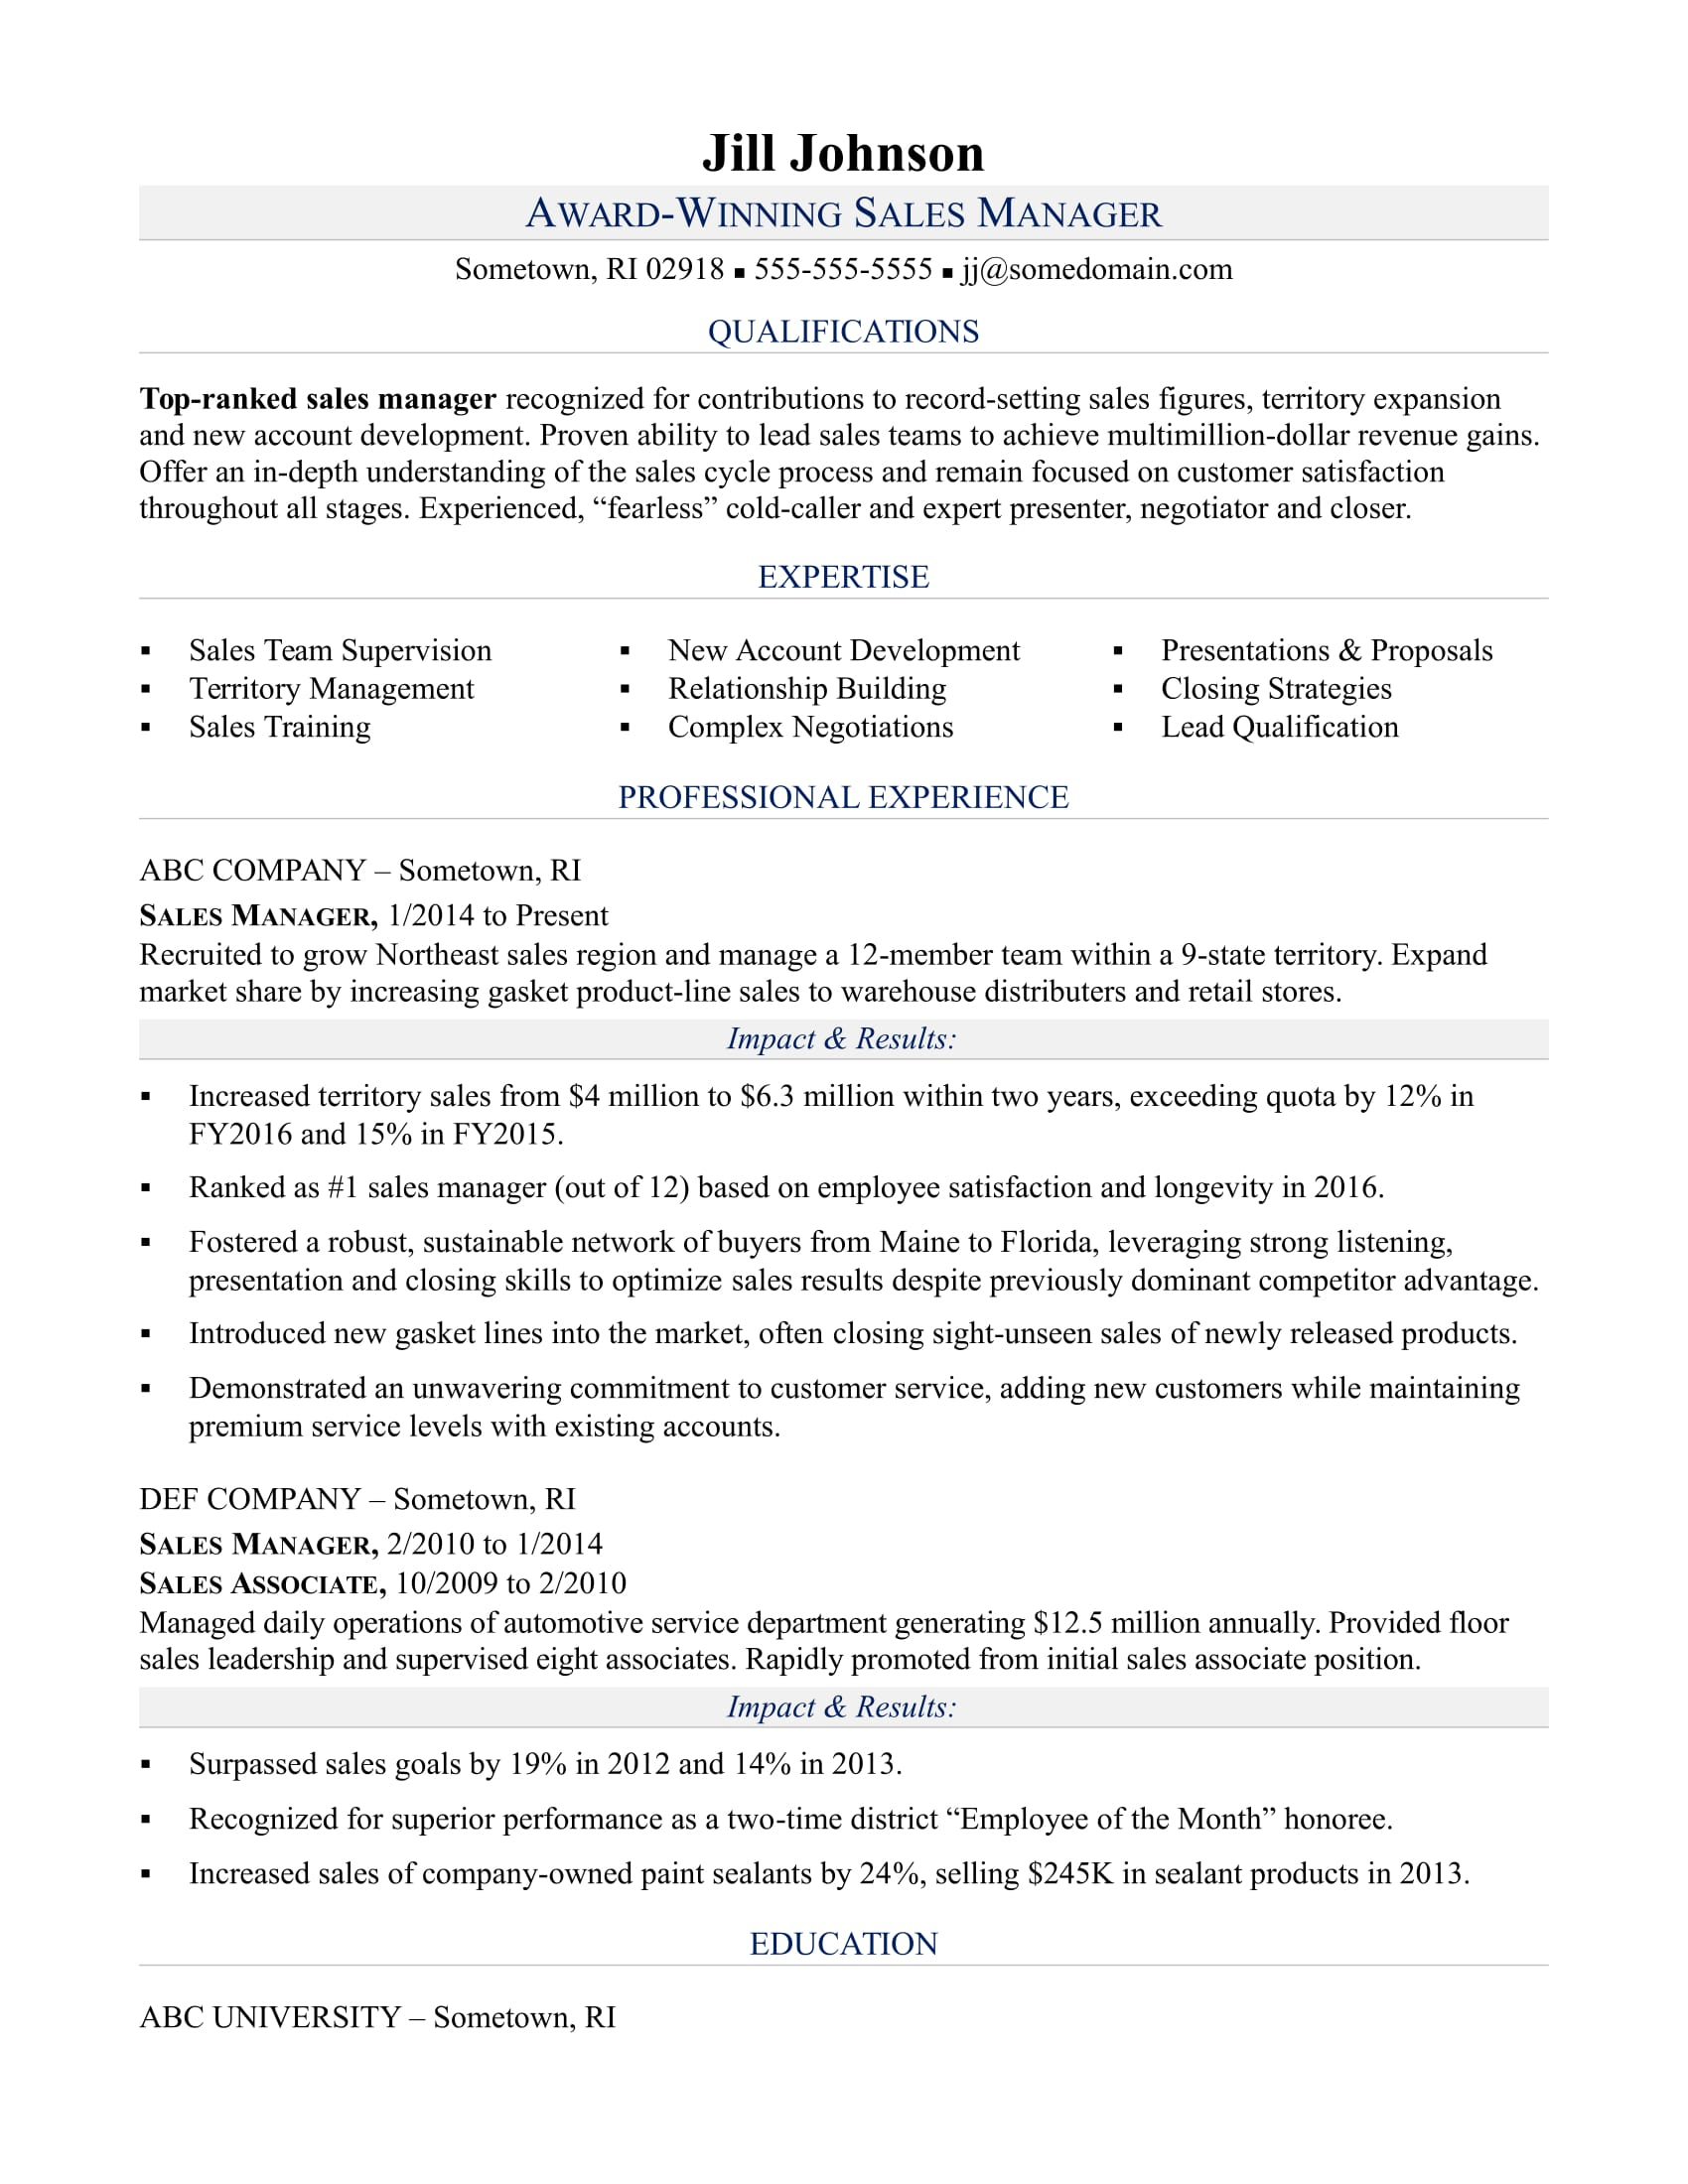 sample resume for a sales manager - Resume Samples For Sales Manager